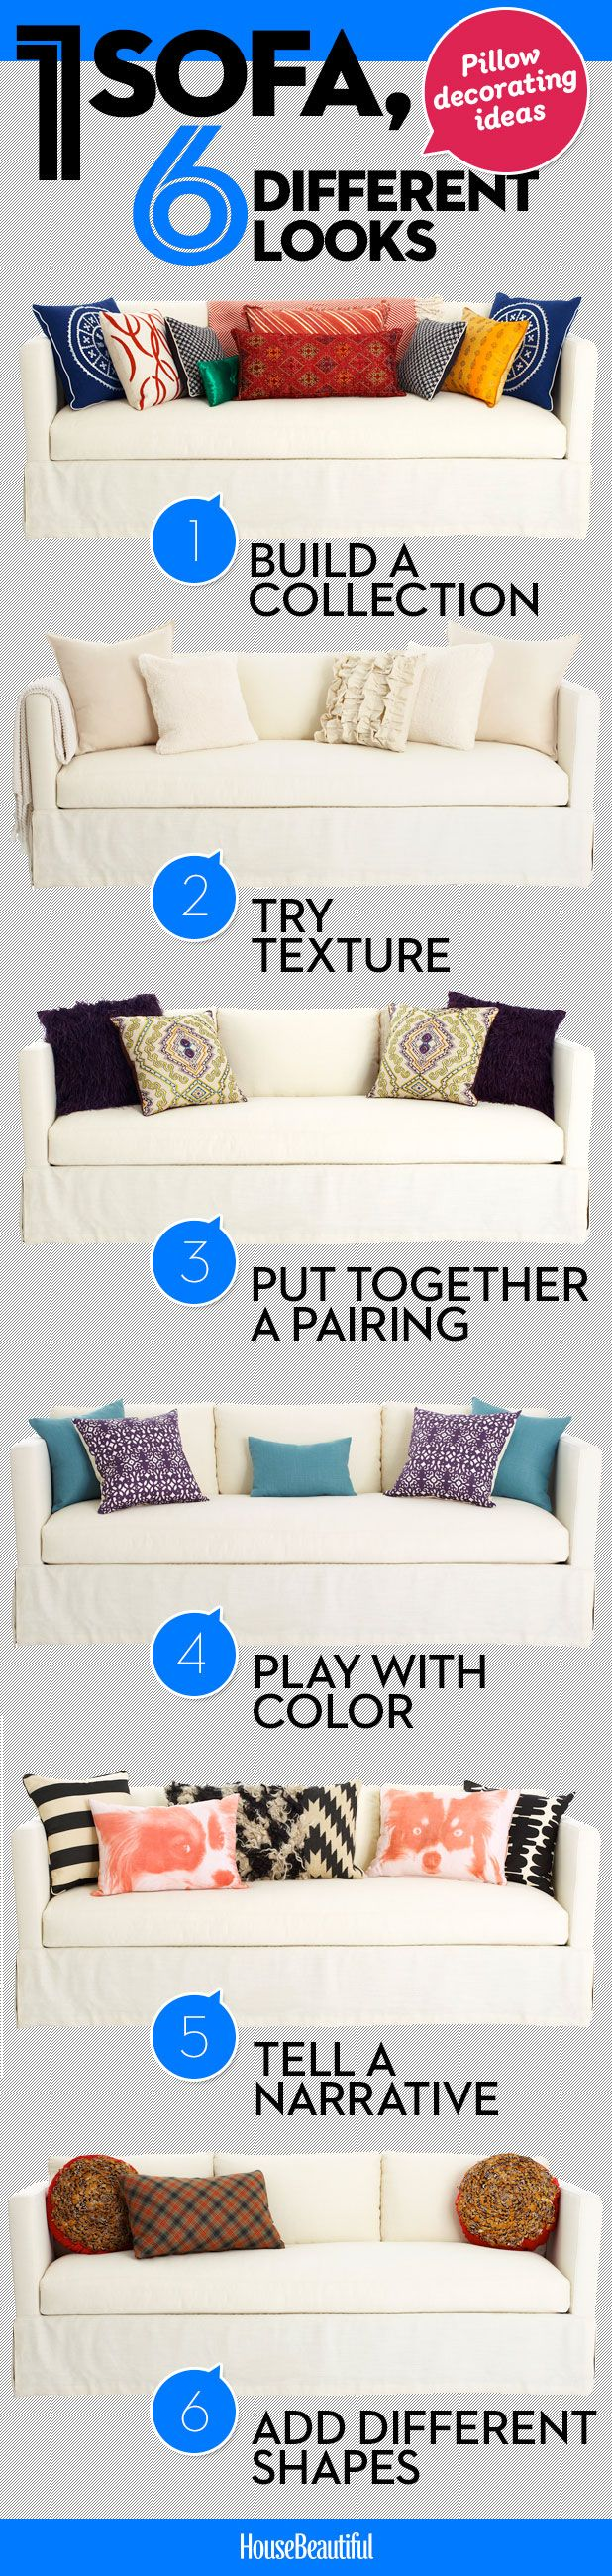 Best 25 cojines para sofas ideas on pinterest cojines for Cojines sofa exterior